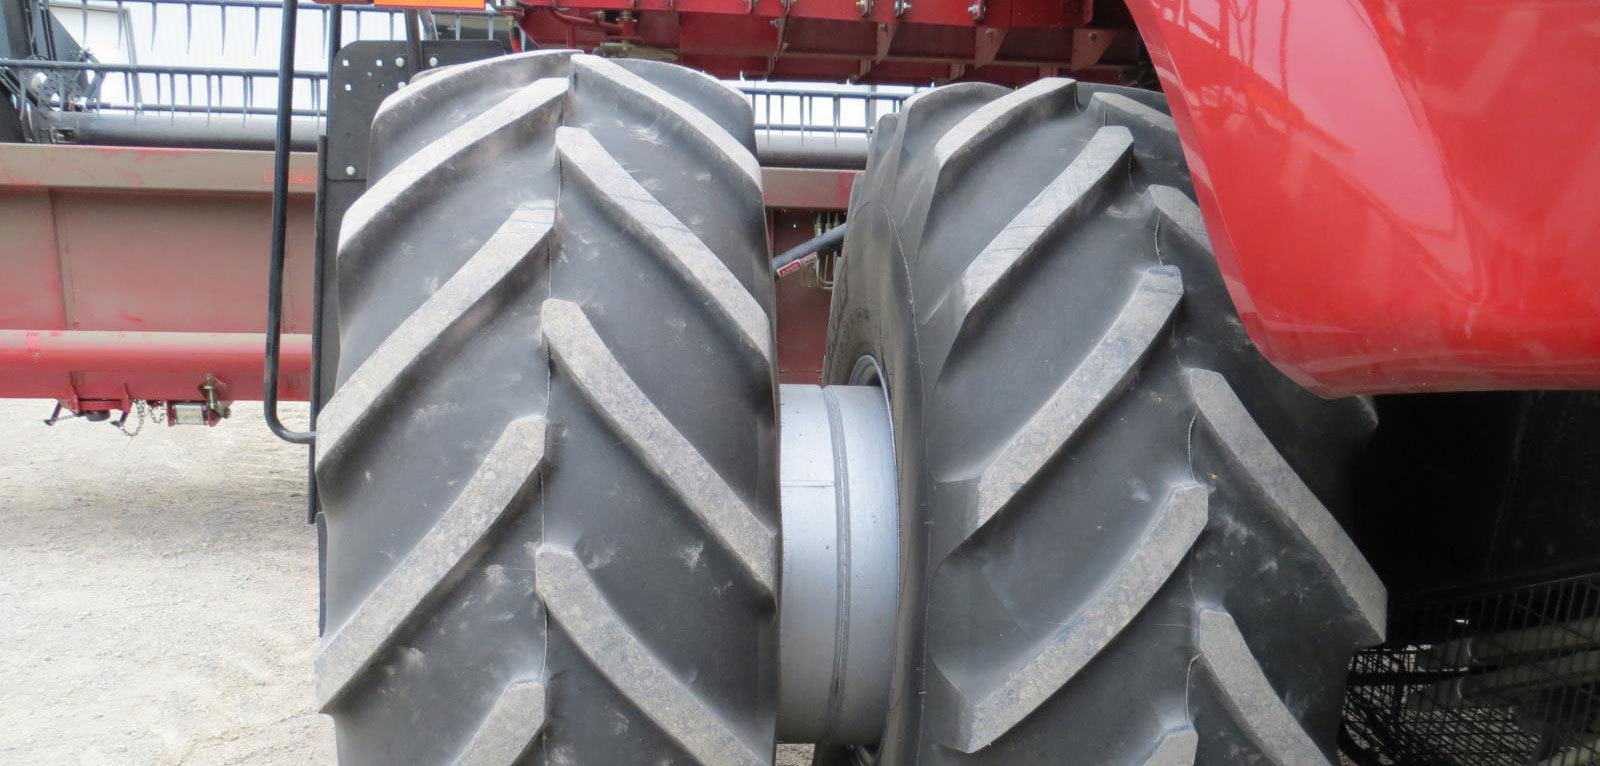 Michelin launches new harvester tire, just in time for North American harvest